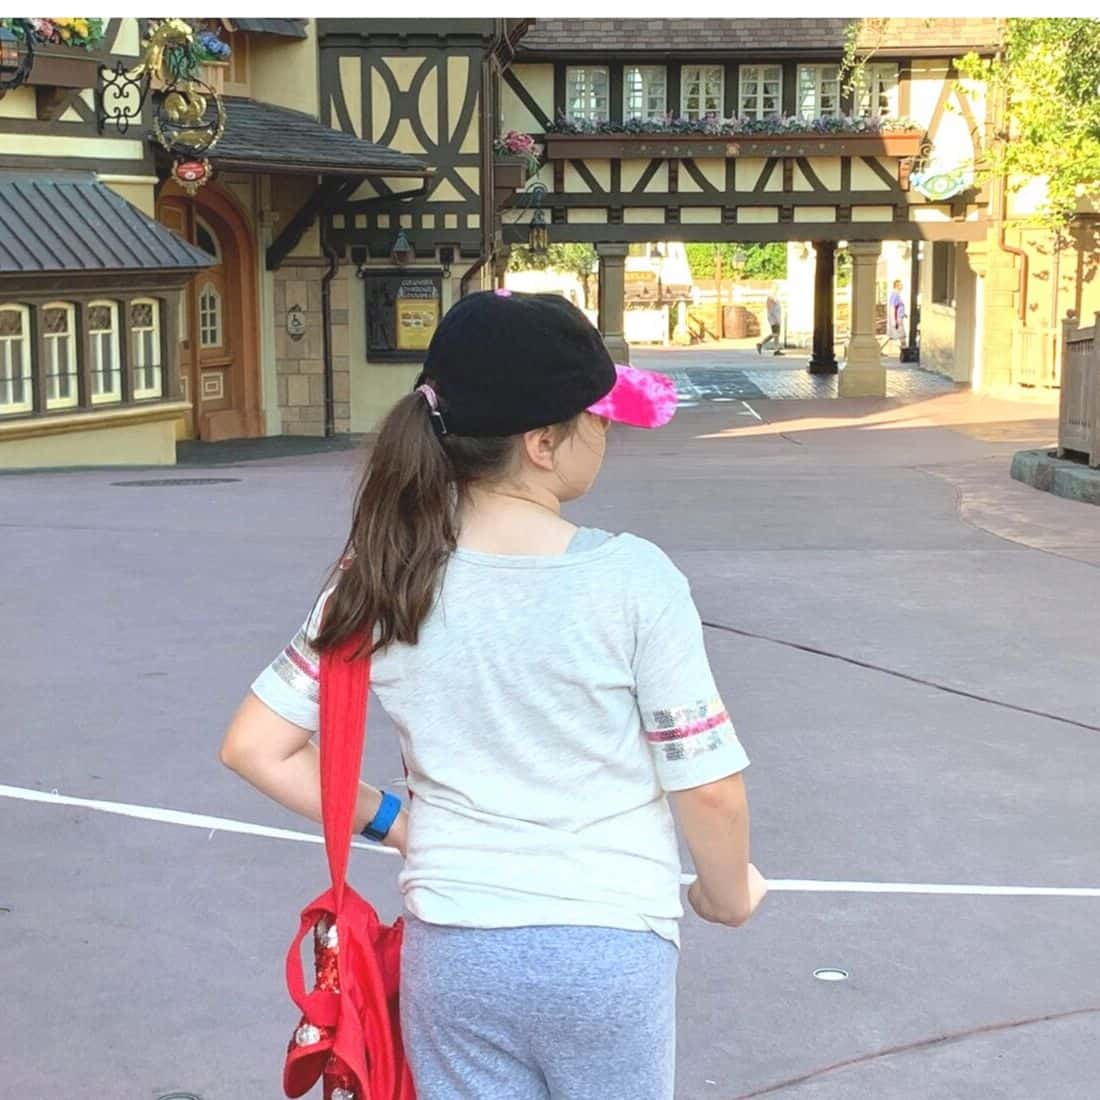 Magic Kingdom Rope Drop – 10 Things You Must Know